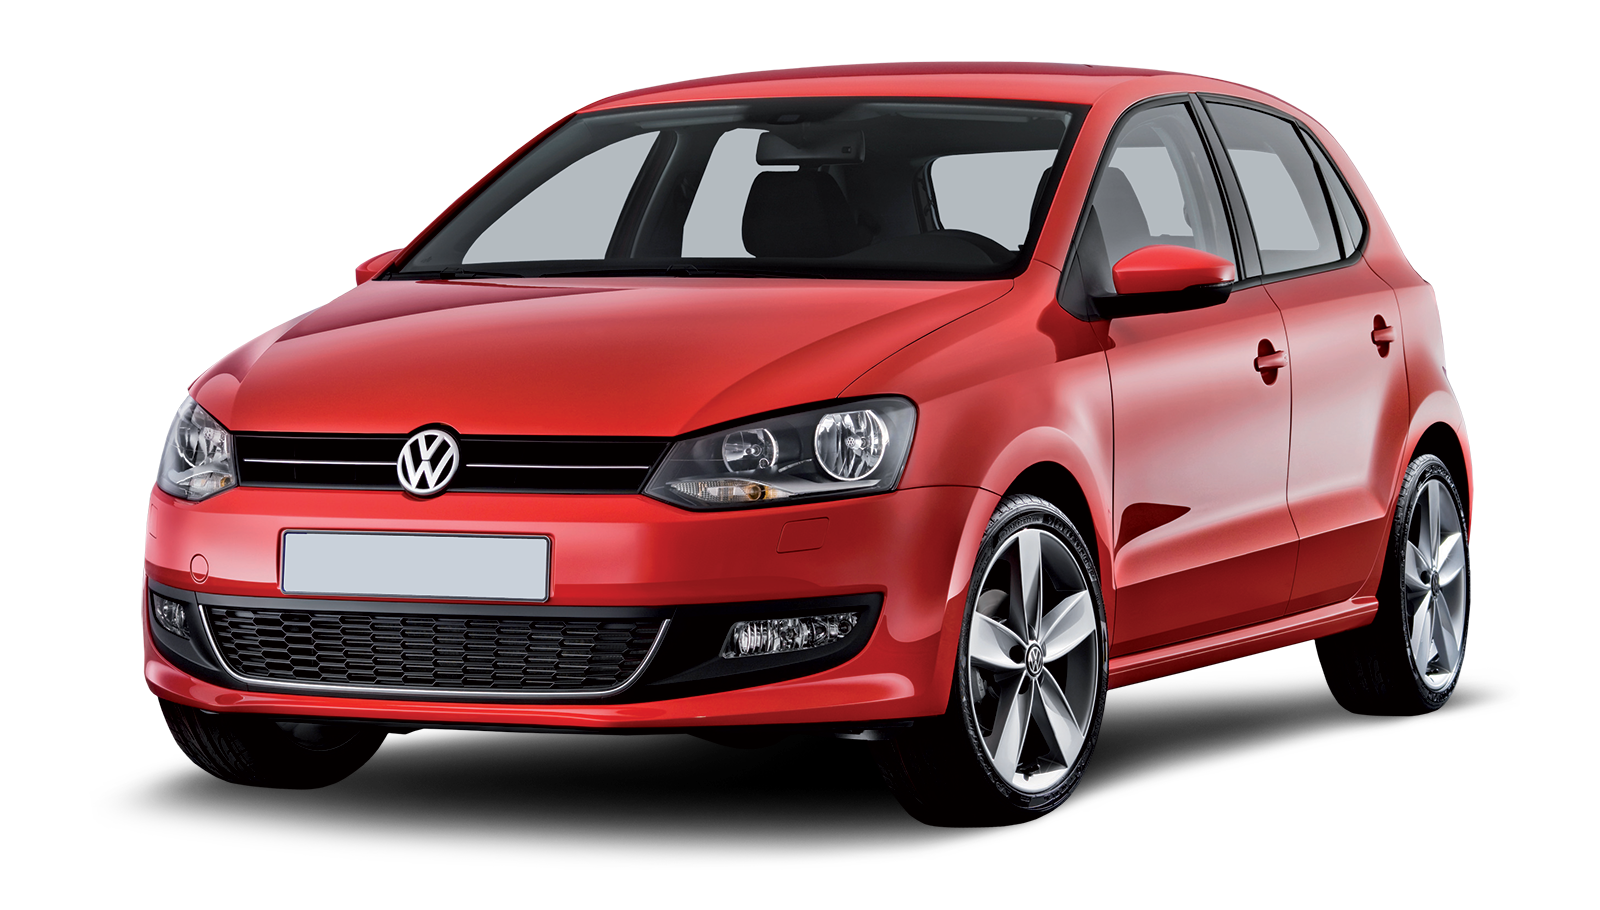 VW car service near me at Coopers Plains